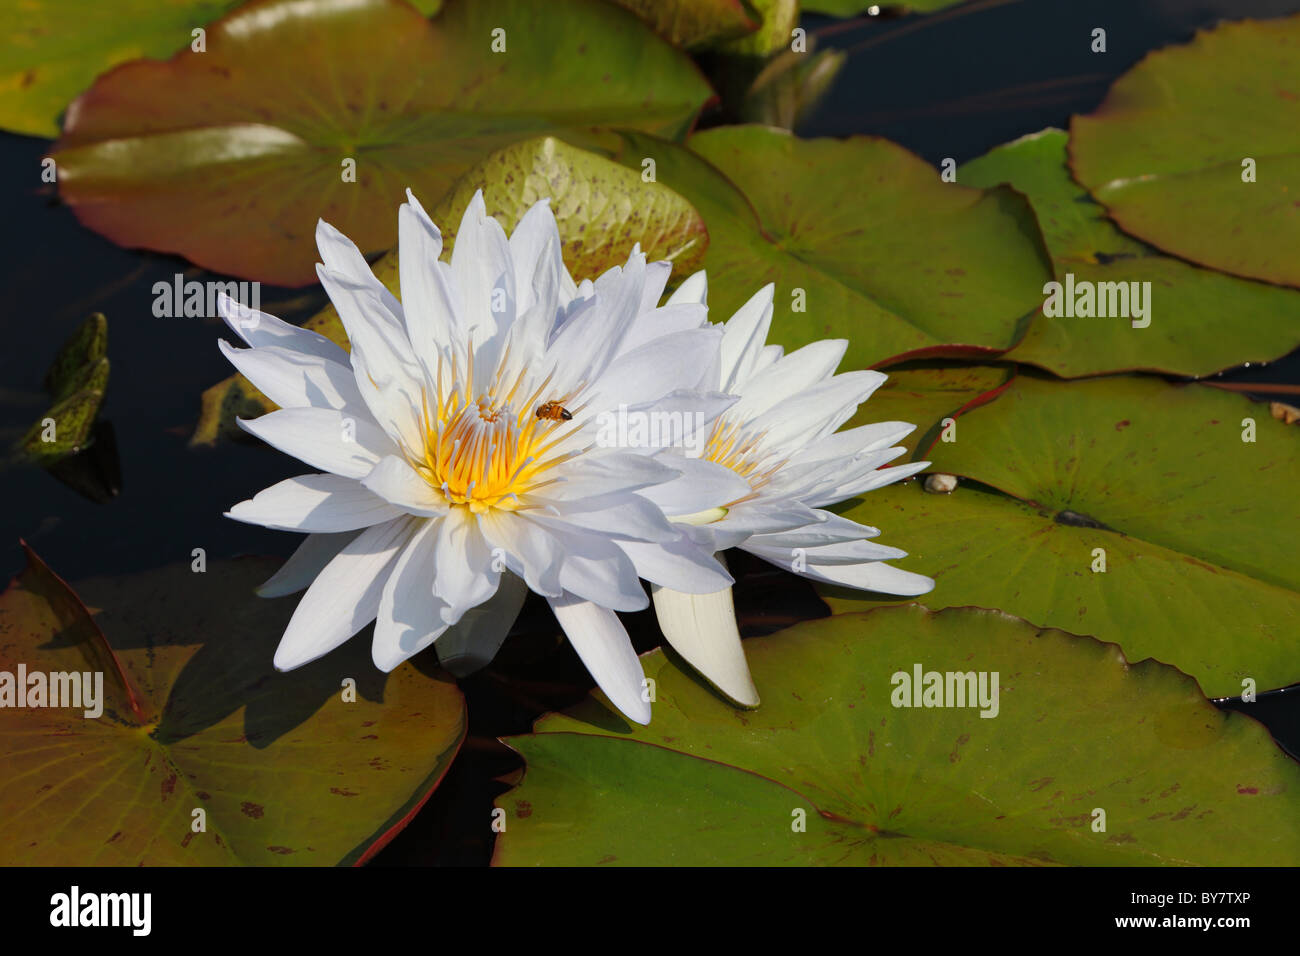 Two white water lilies in large coriaceous leaves on a sunny day Stock Photo